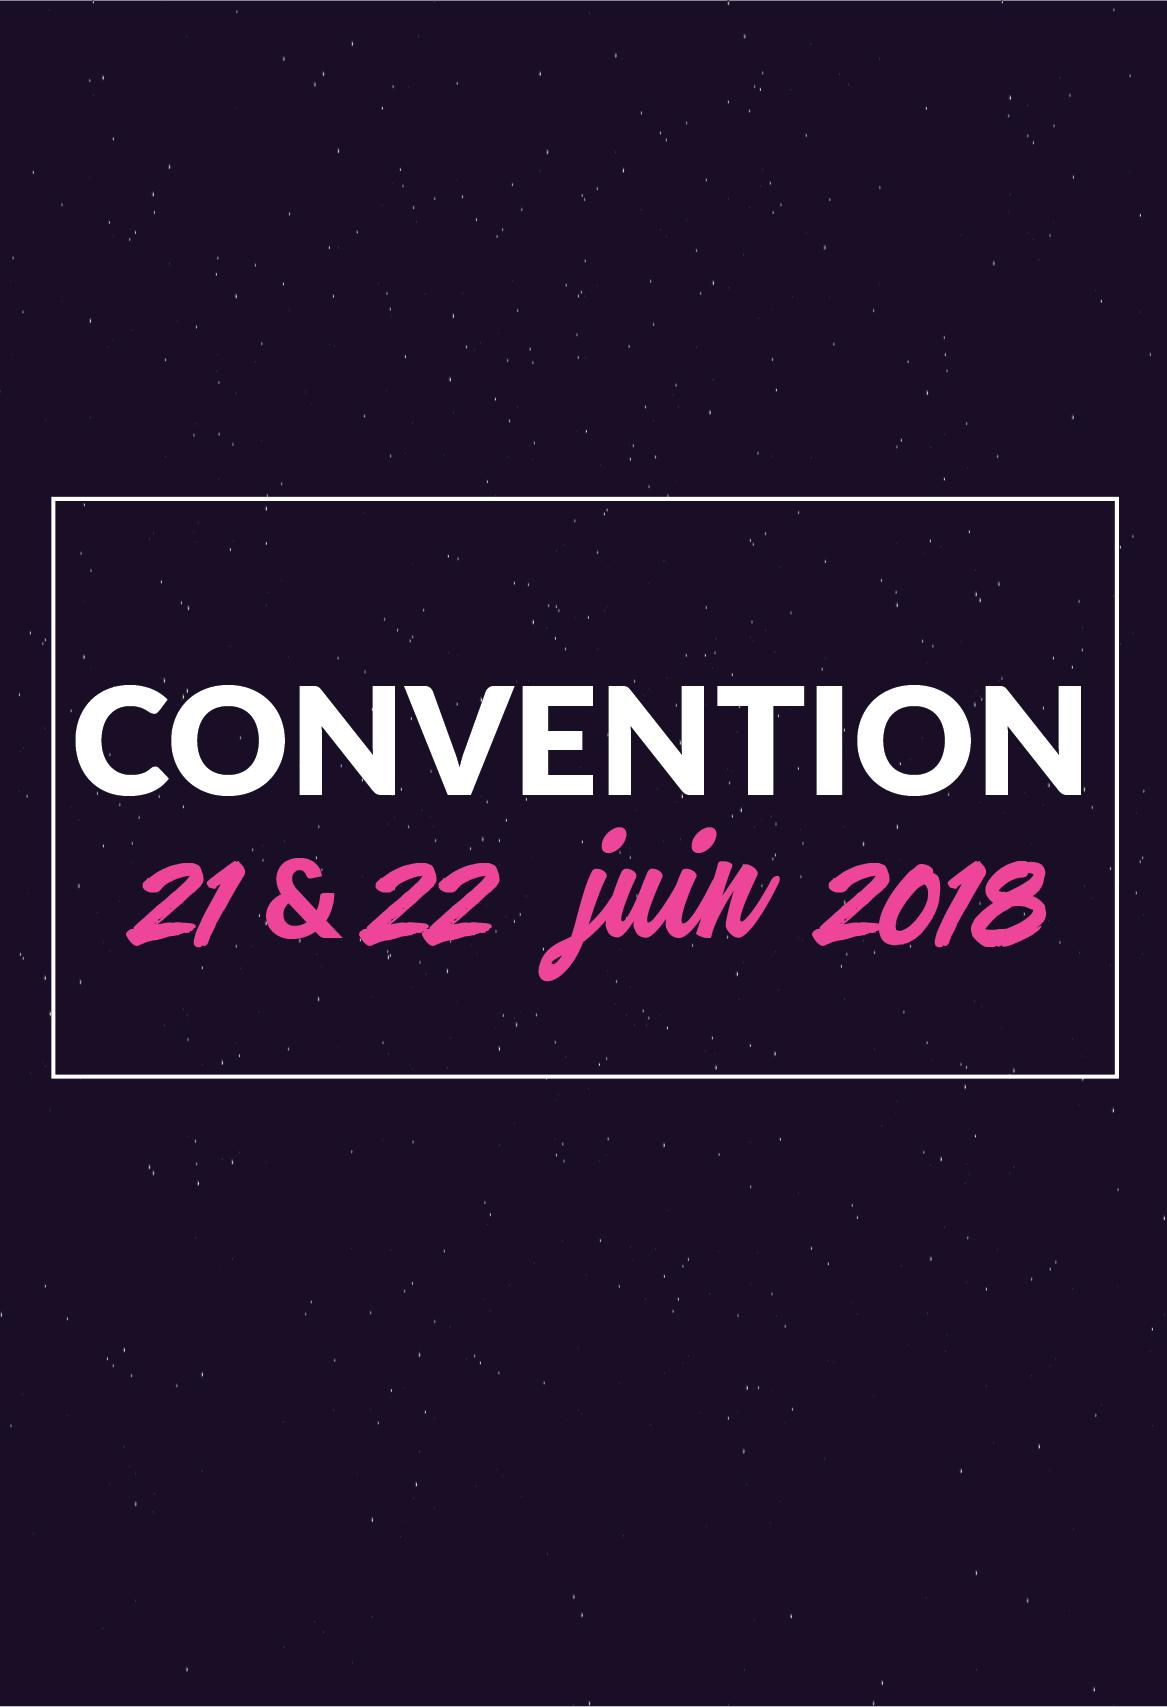 Convention_dates